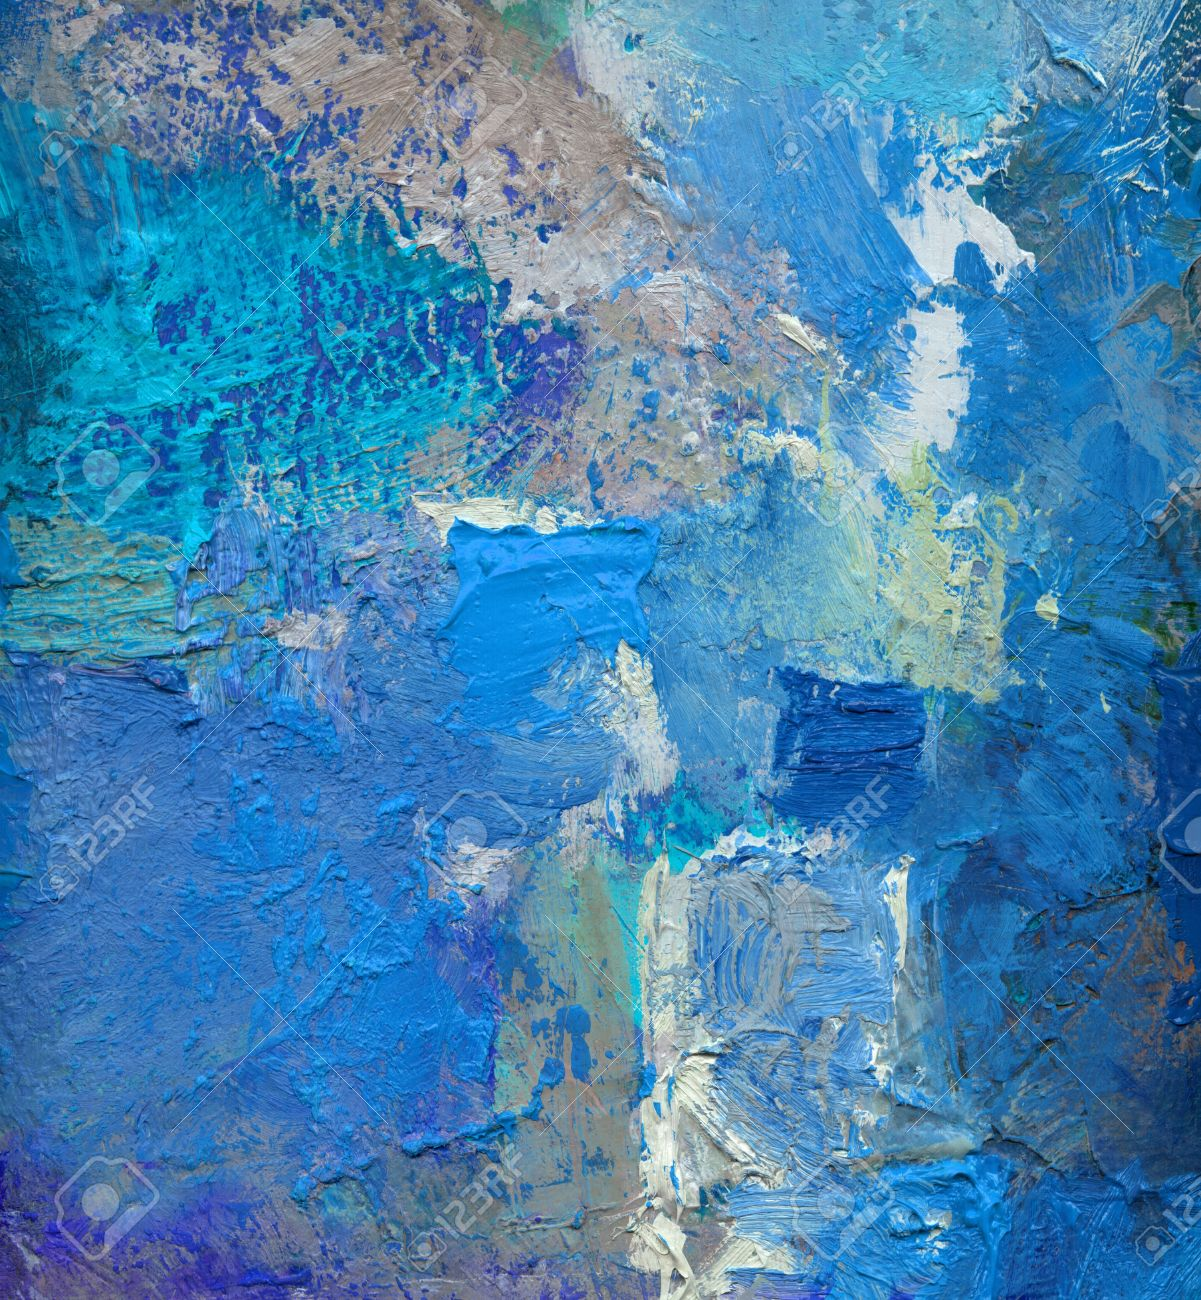 abstract blue colored layer artwork, opaque and transparent oil paint textures on canvas - 62340671